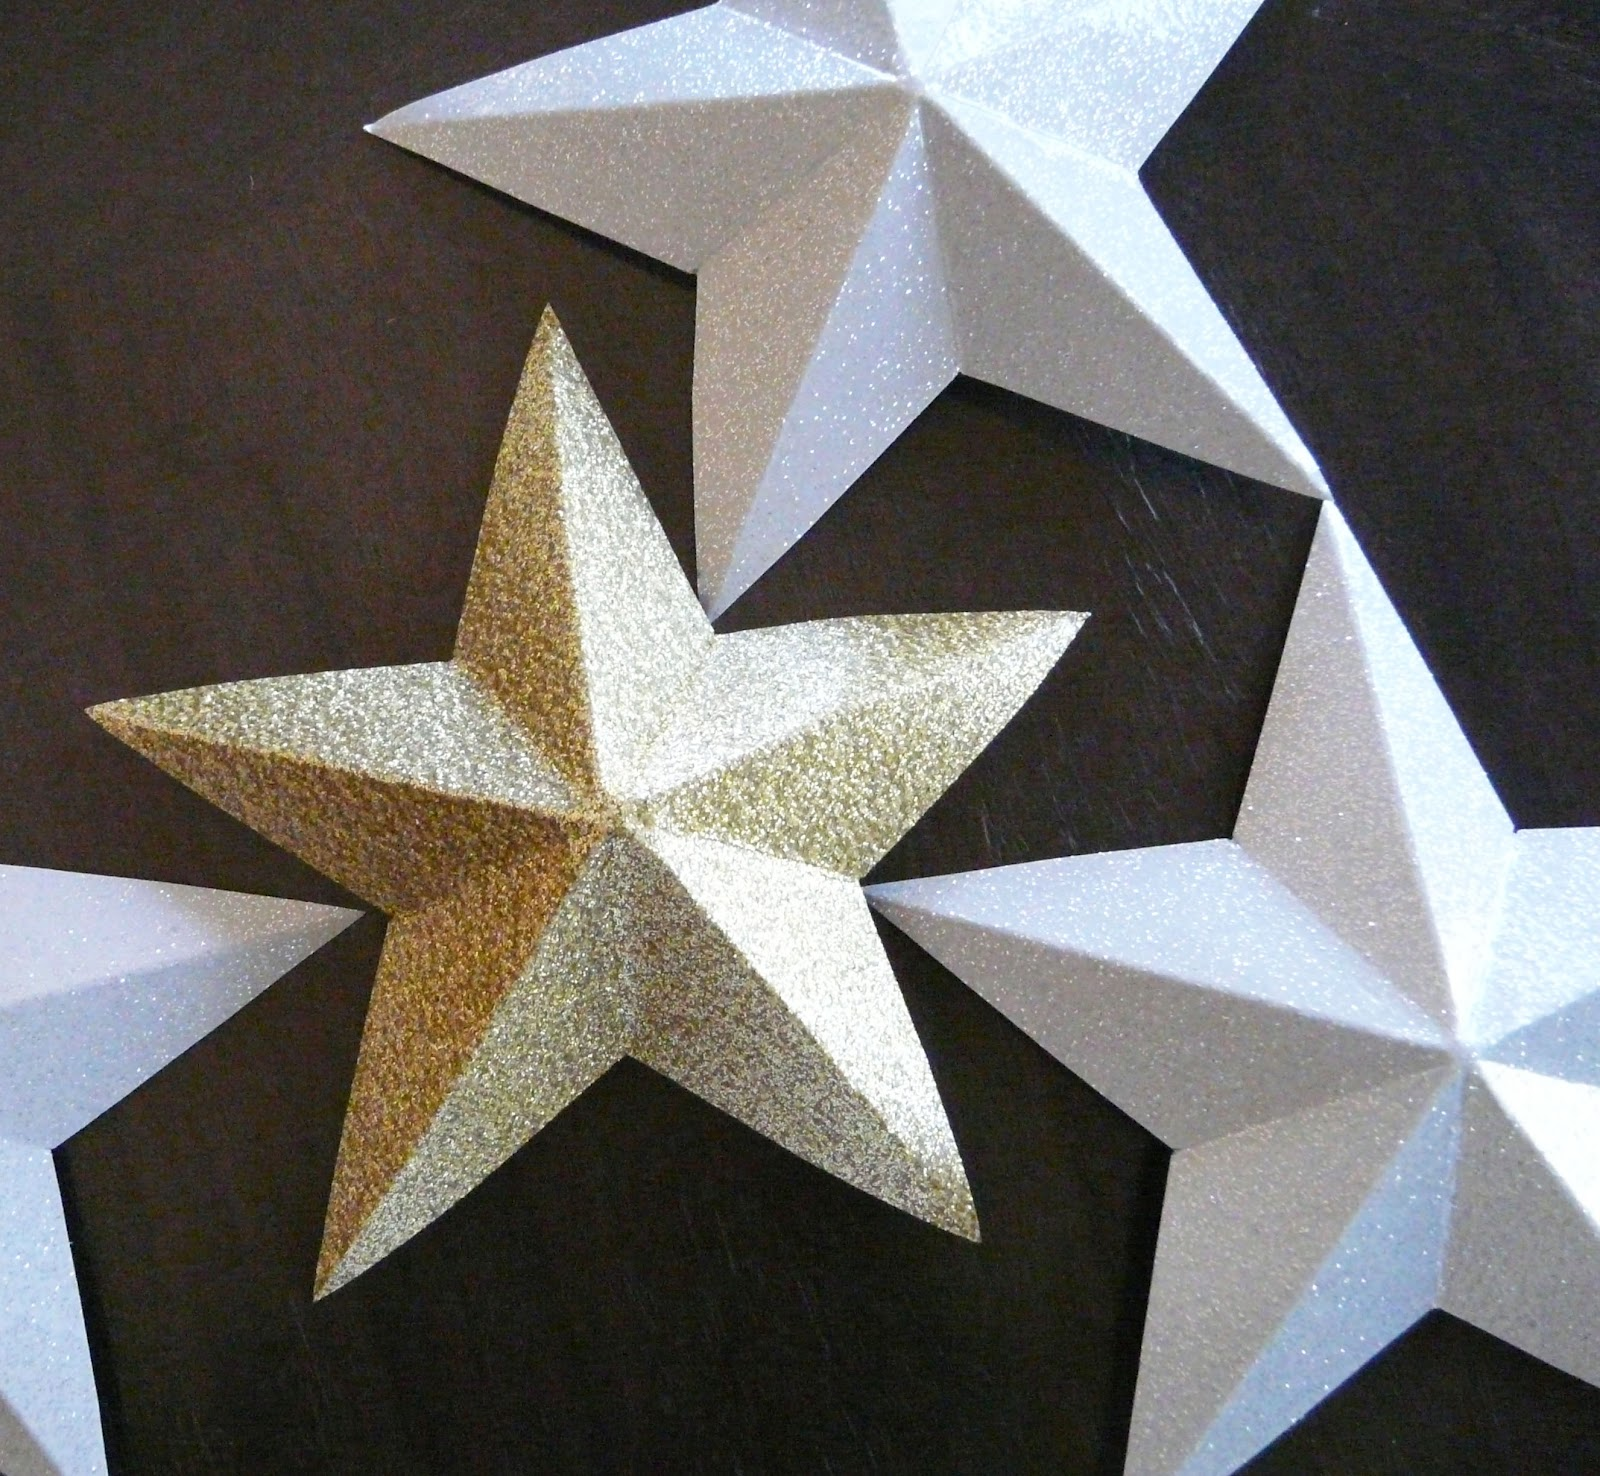 My stars will be 1-sided since they will decorate a wall, but 2 halves ...